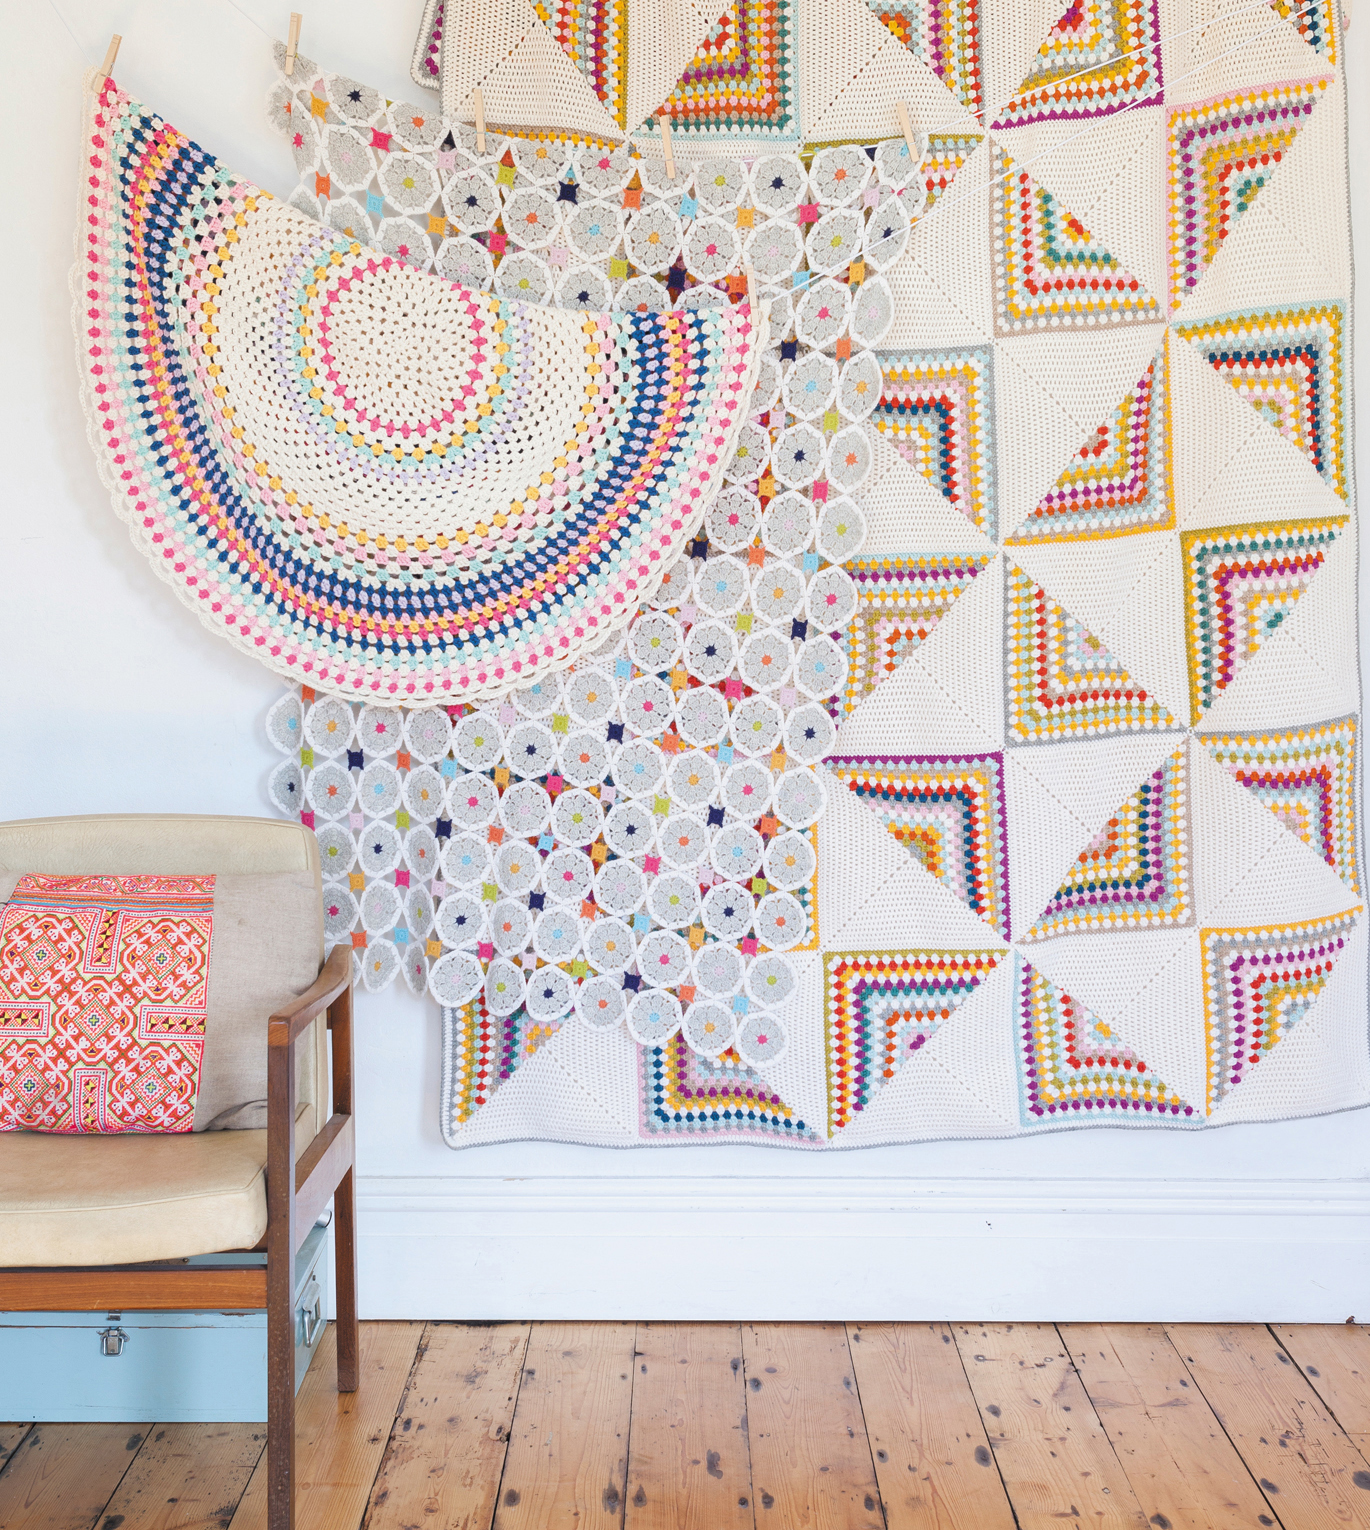 Blankets from Crochet Home by Emma Lamb